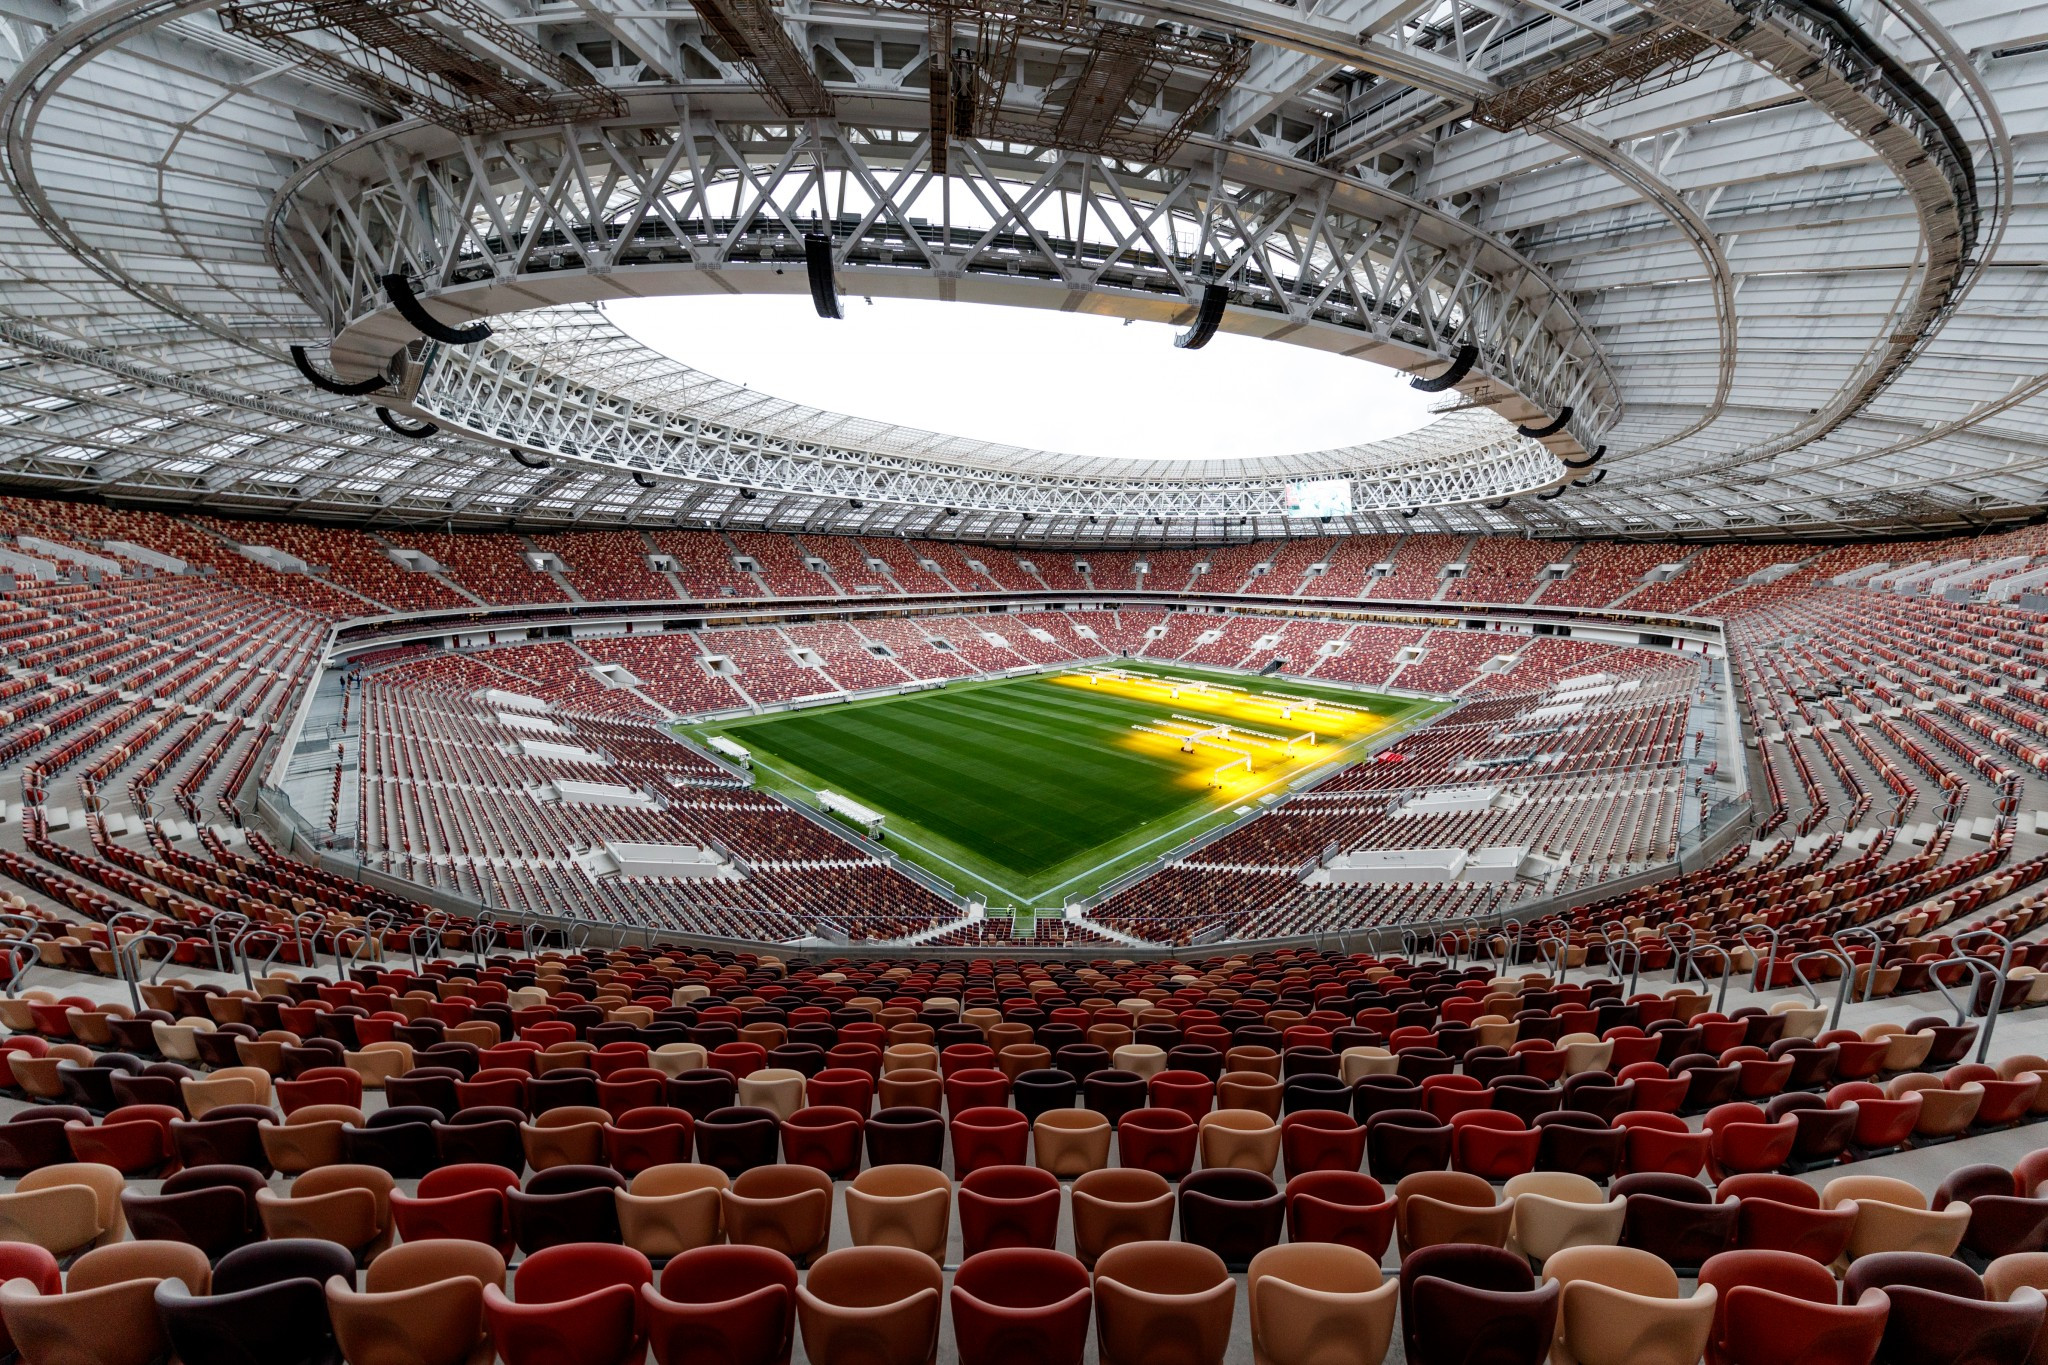 The Luzhniki Stadium will host the 2018 FIFA World Cup final ©Getty Images